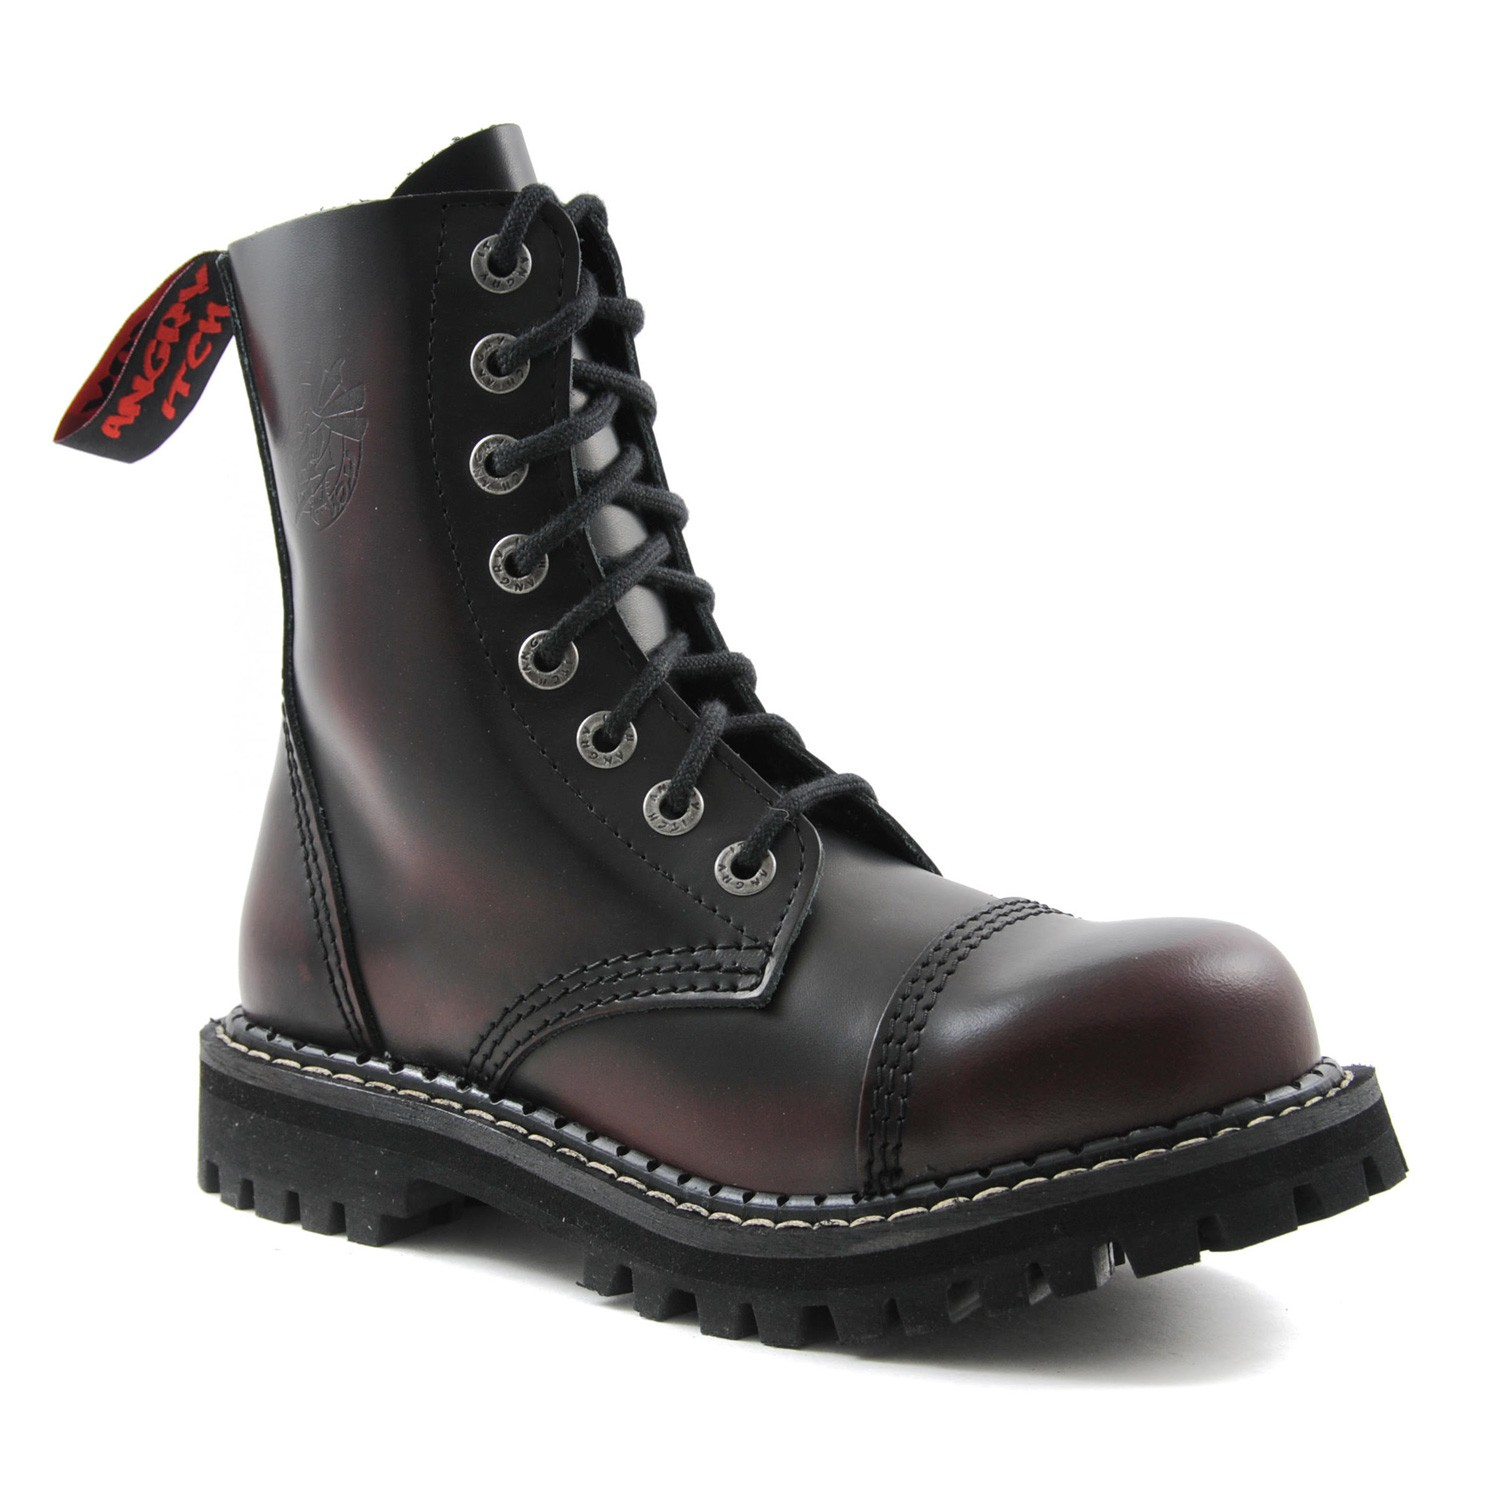 Angry Itch - 8-Loch Gothic Punk Army Ranger Armee Burgundy Rot Rub-Off Leder Stiefel mit Stahlkappe 36-48 - Made in EU!